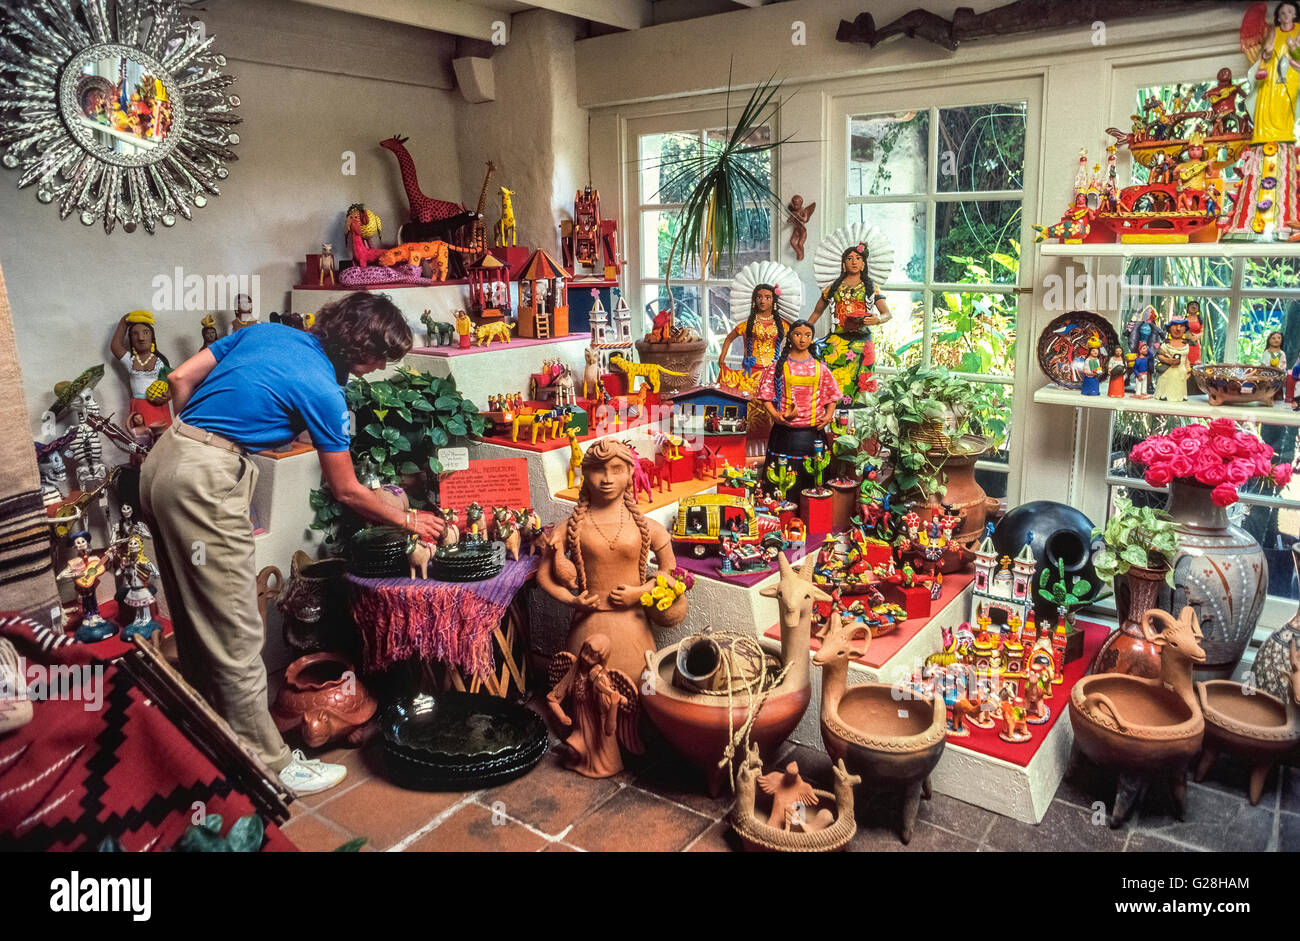 Colorful folk art from Mexico is displayed in an arts and crafts shop in Old Town in San Diego, California, USA. - Stock Image